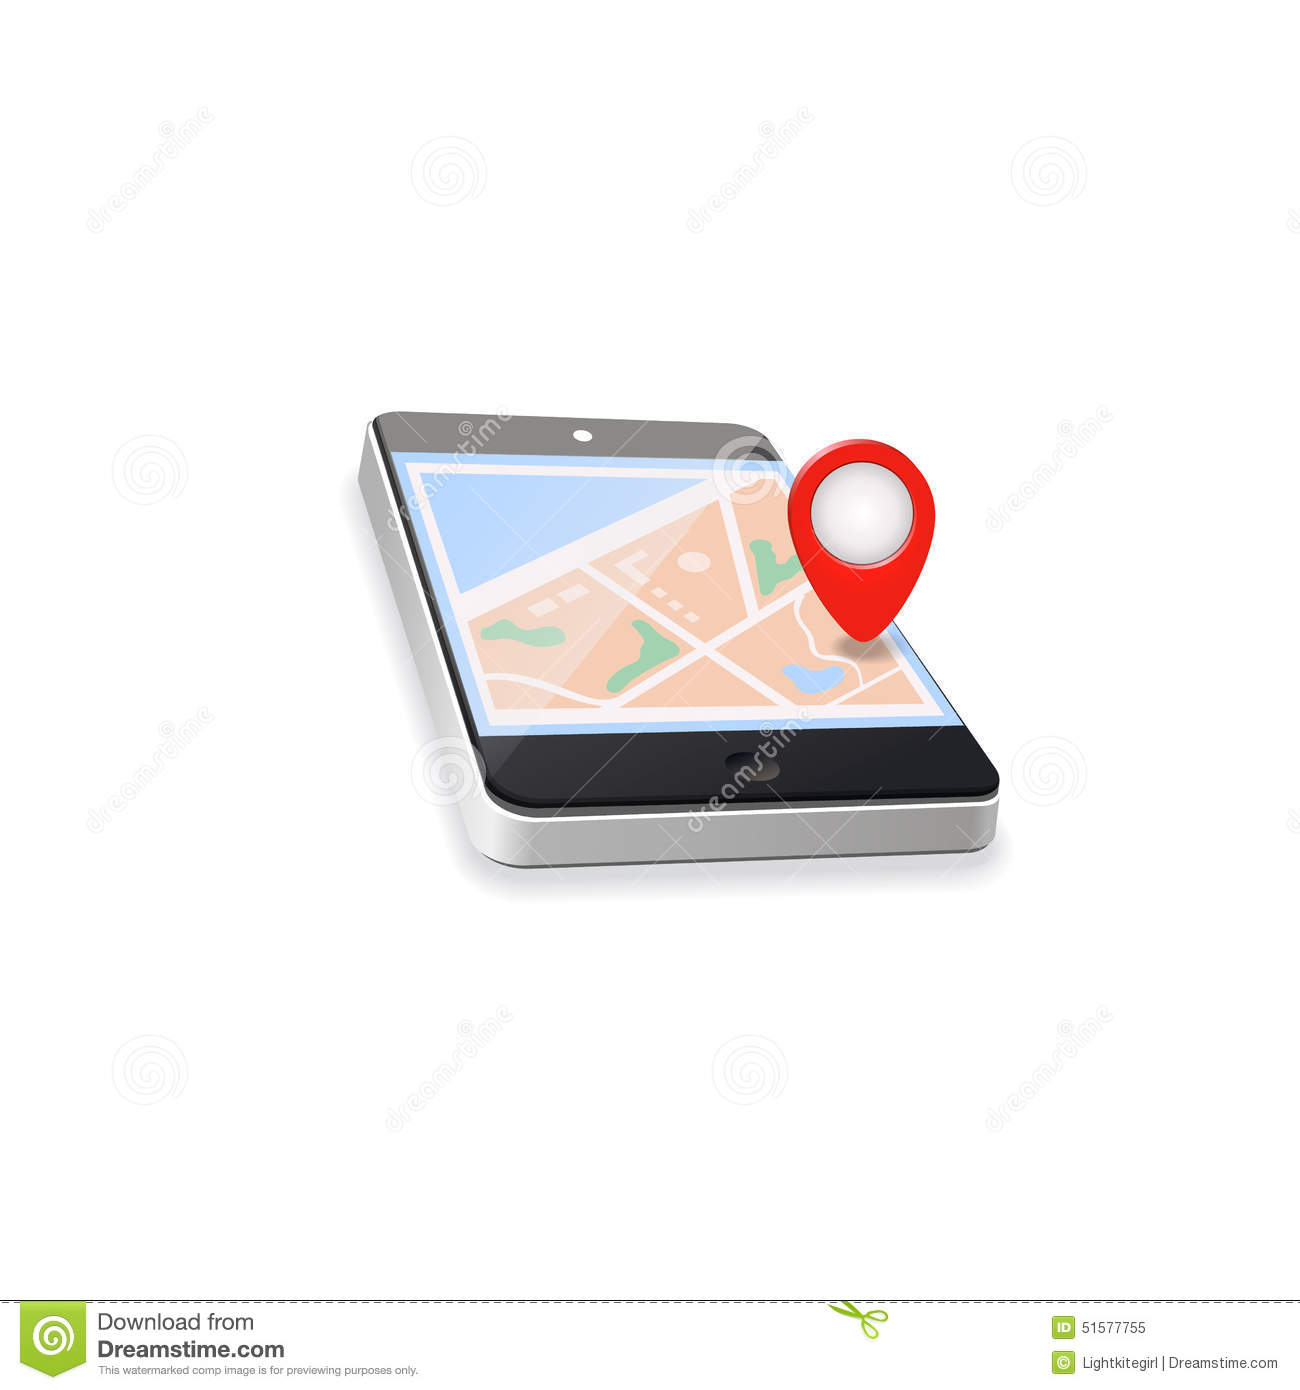 World map gps navigation mobile phone stock illustration world map gps navigation mobile phone royalty free illustration gumiabroncs Image collections